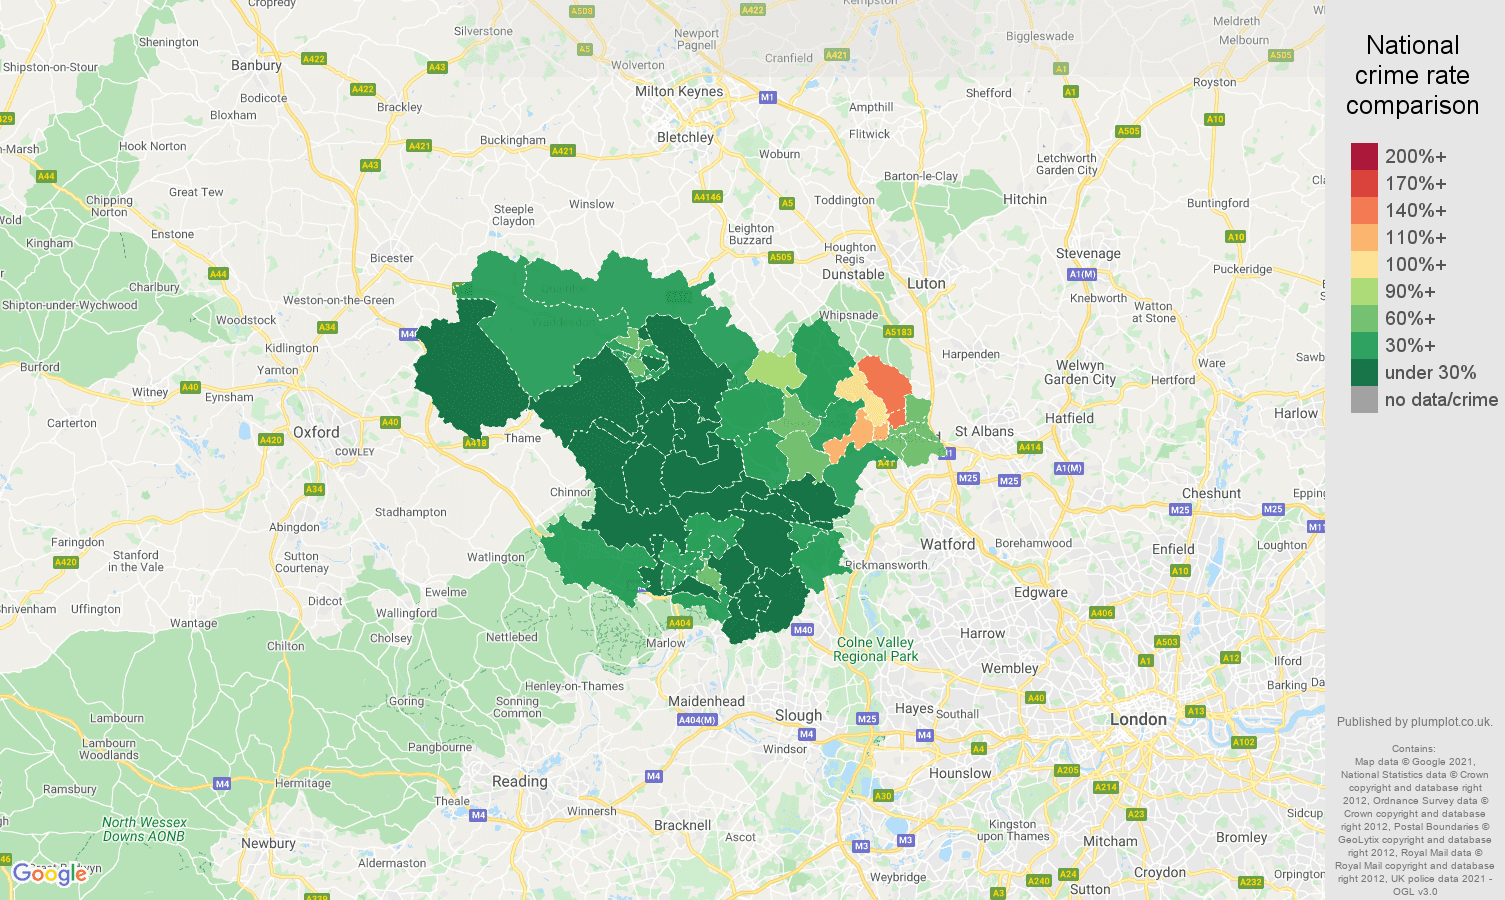 Hemel Hempstead antisocial behaviour crime rate comparison map